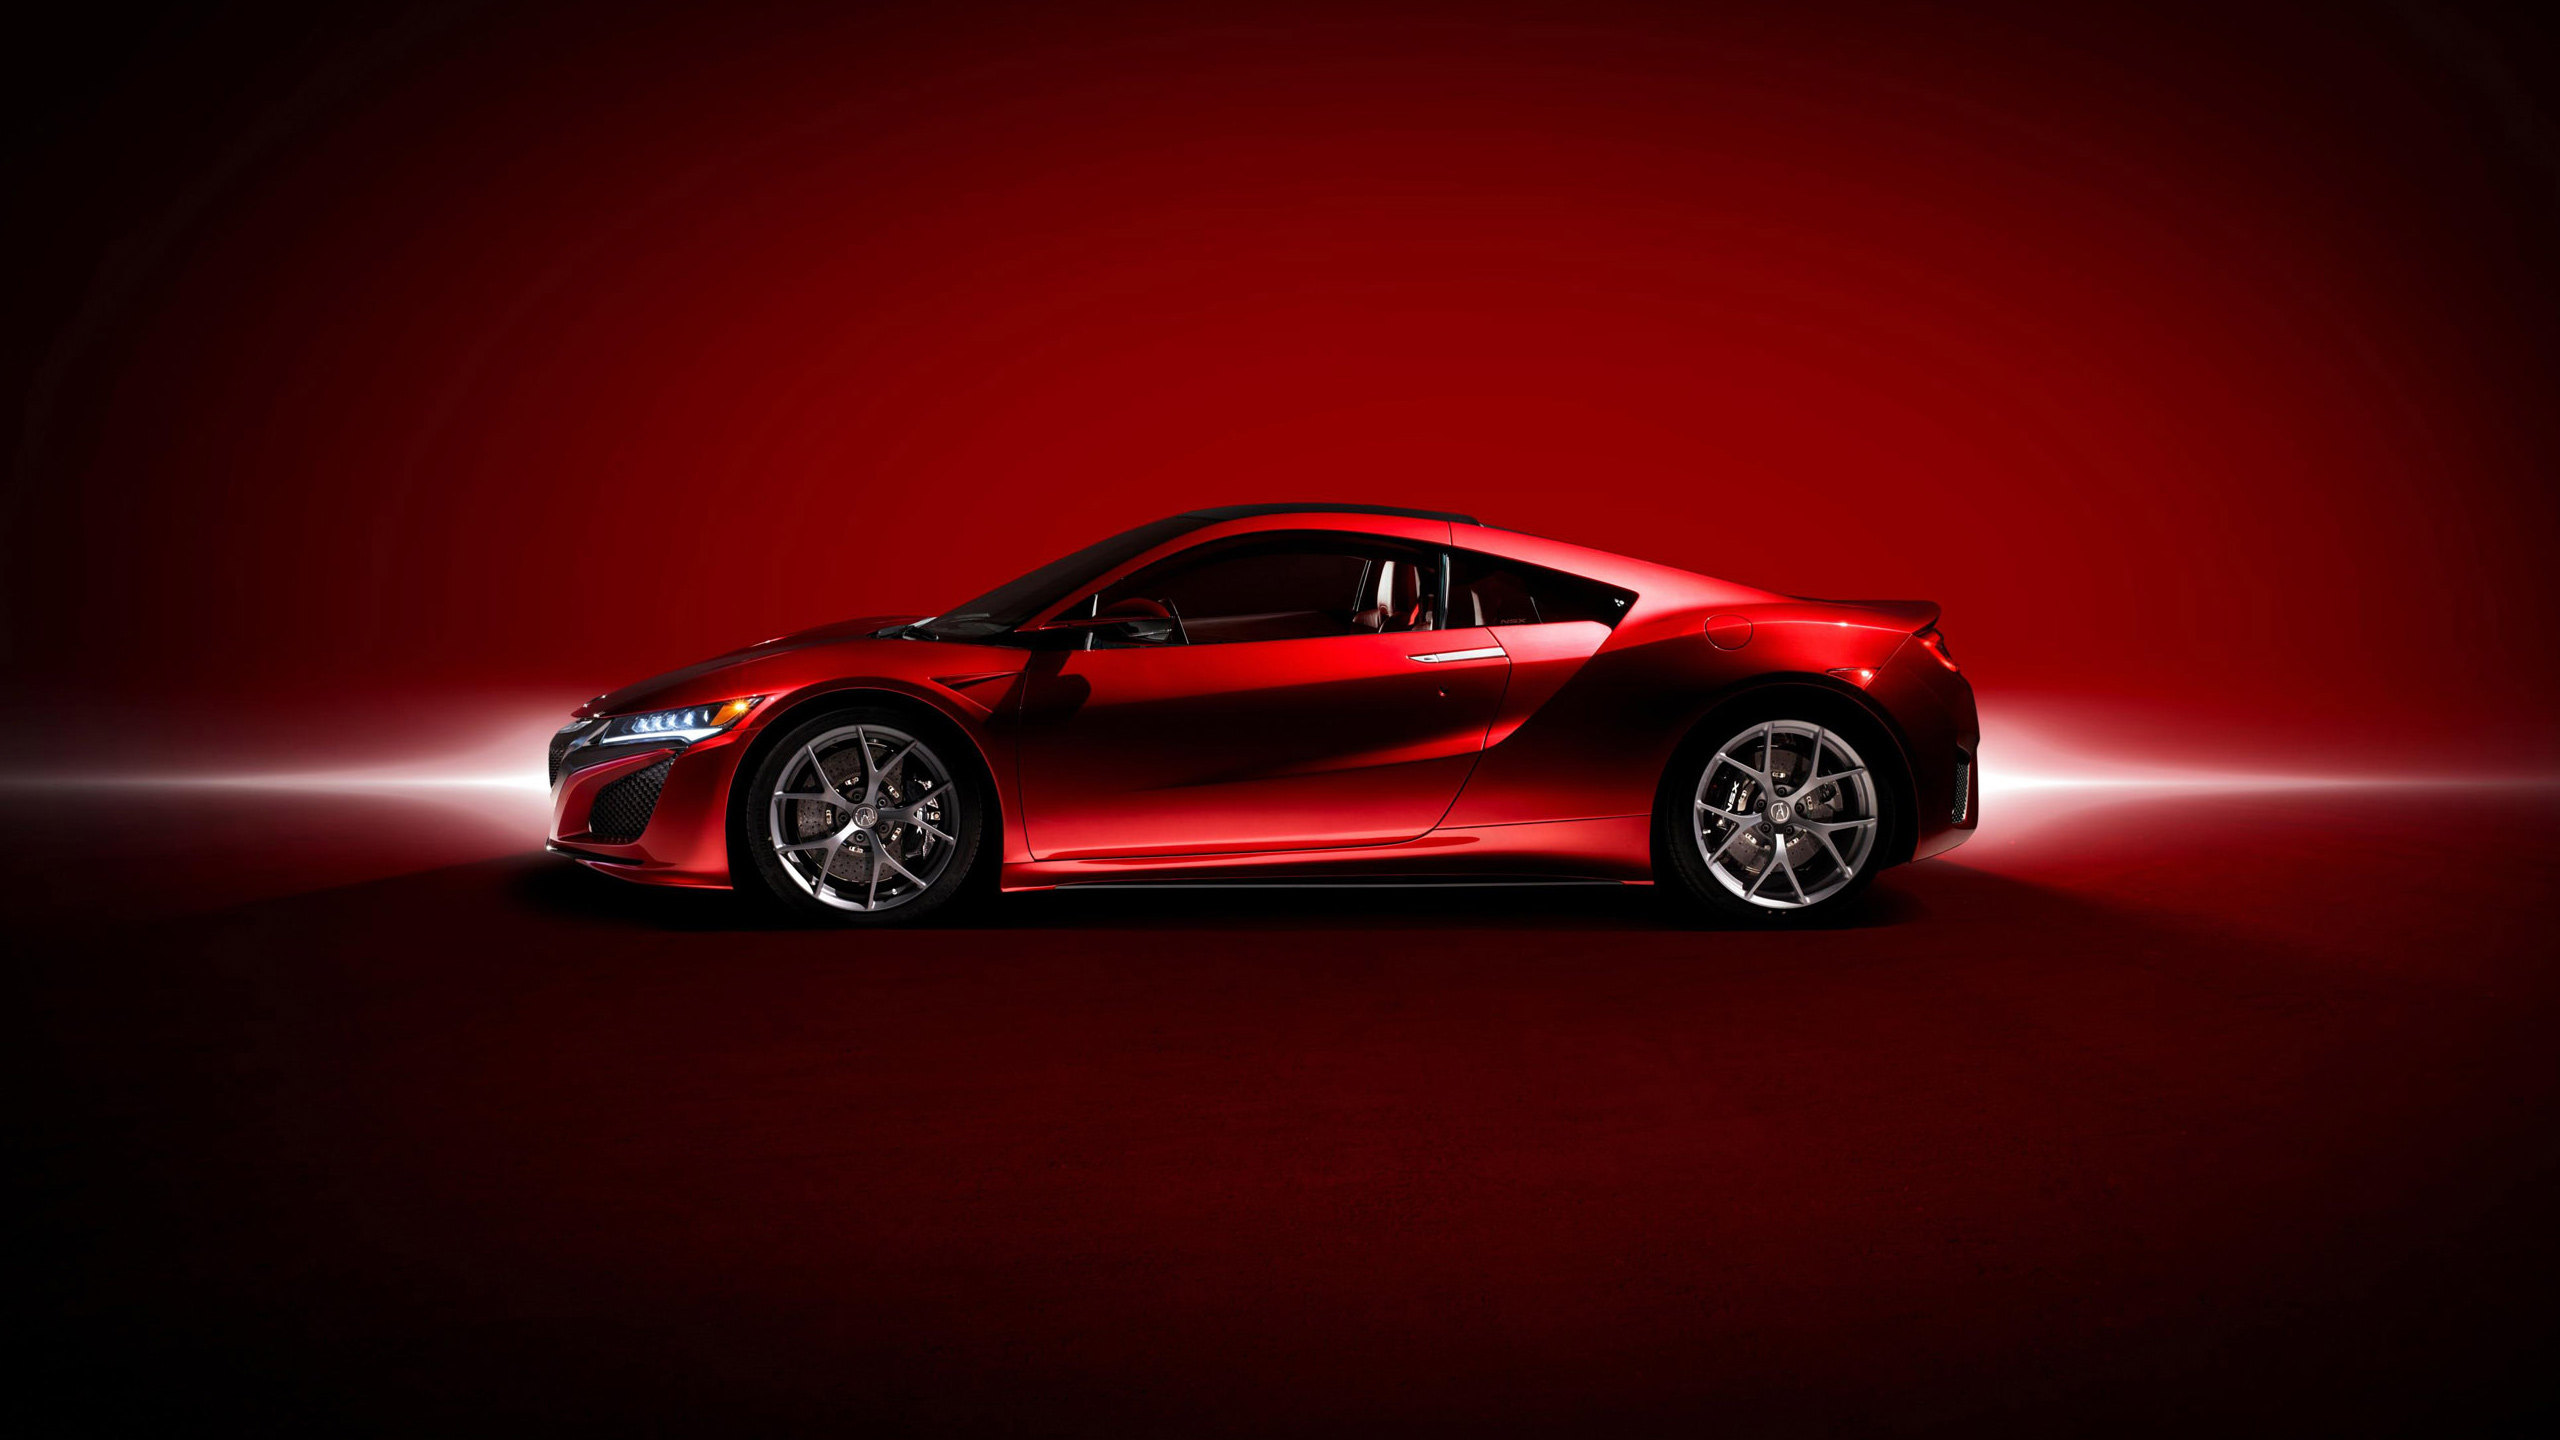 acura nsx 2017 01  red  hd wallpaper